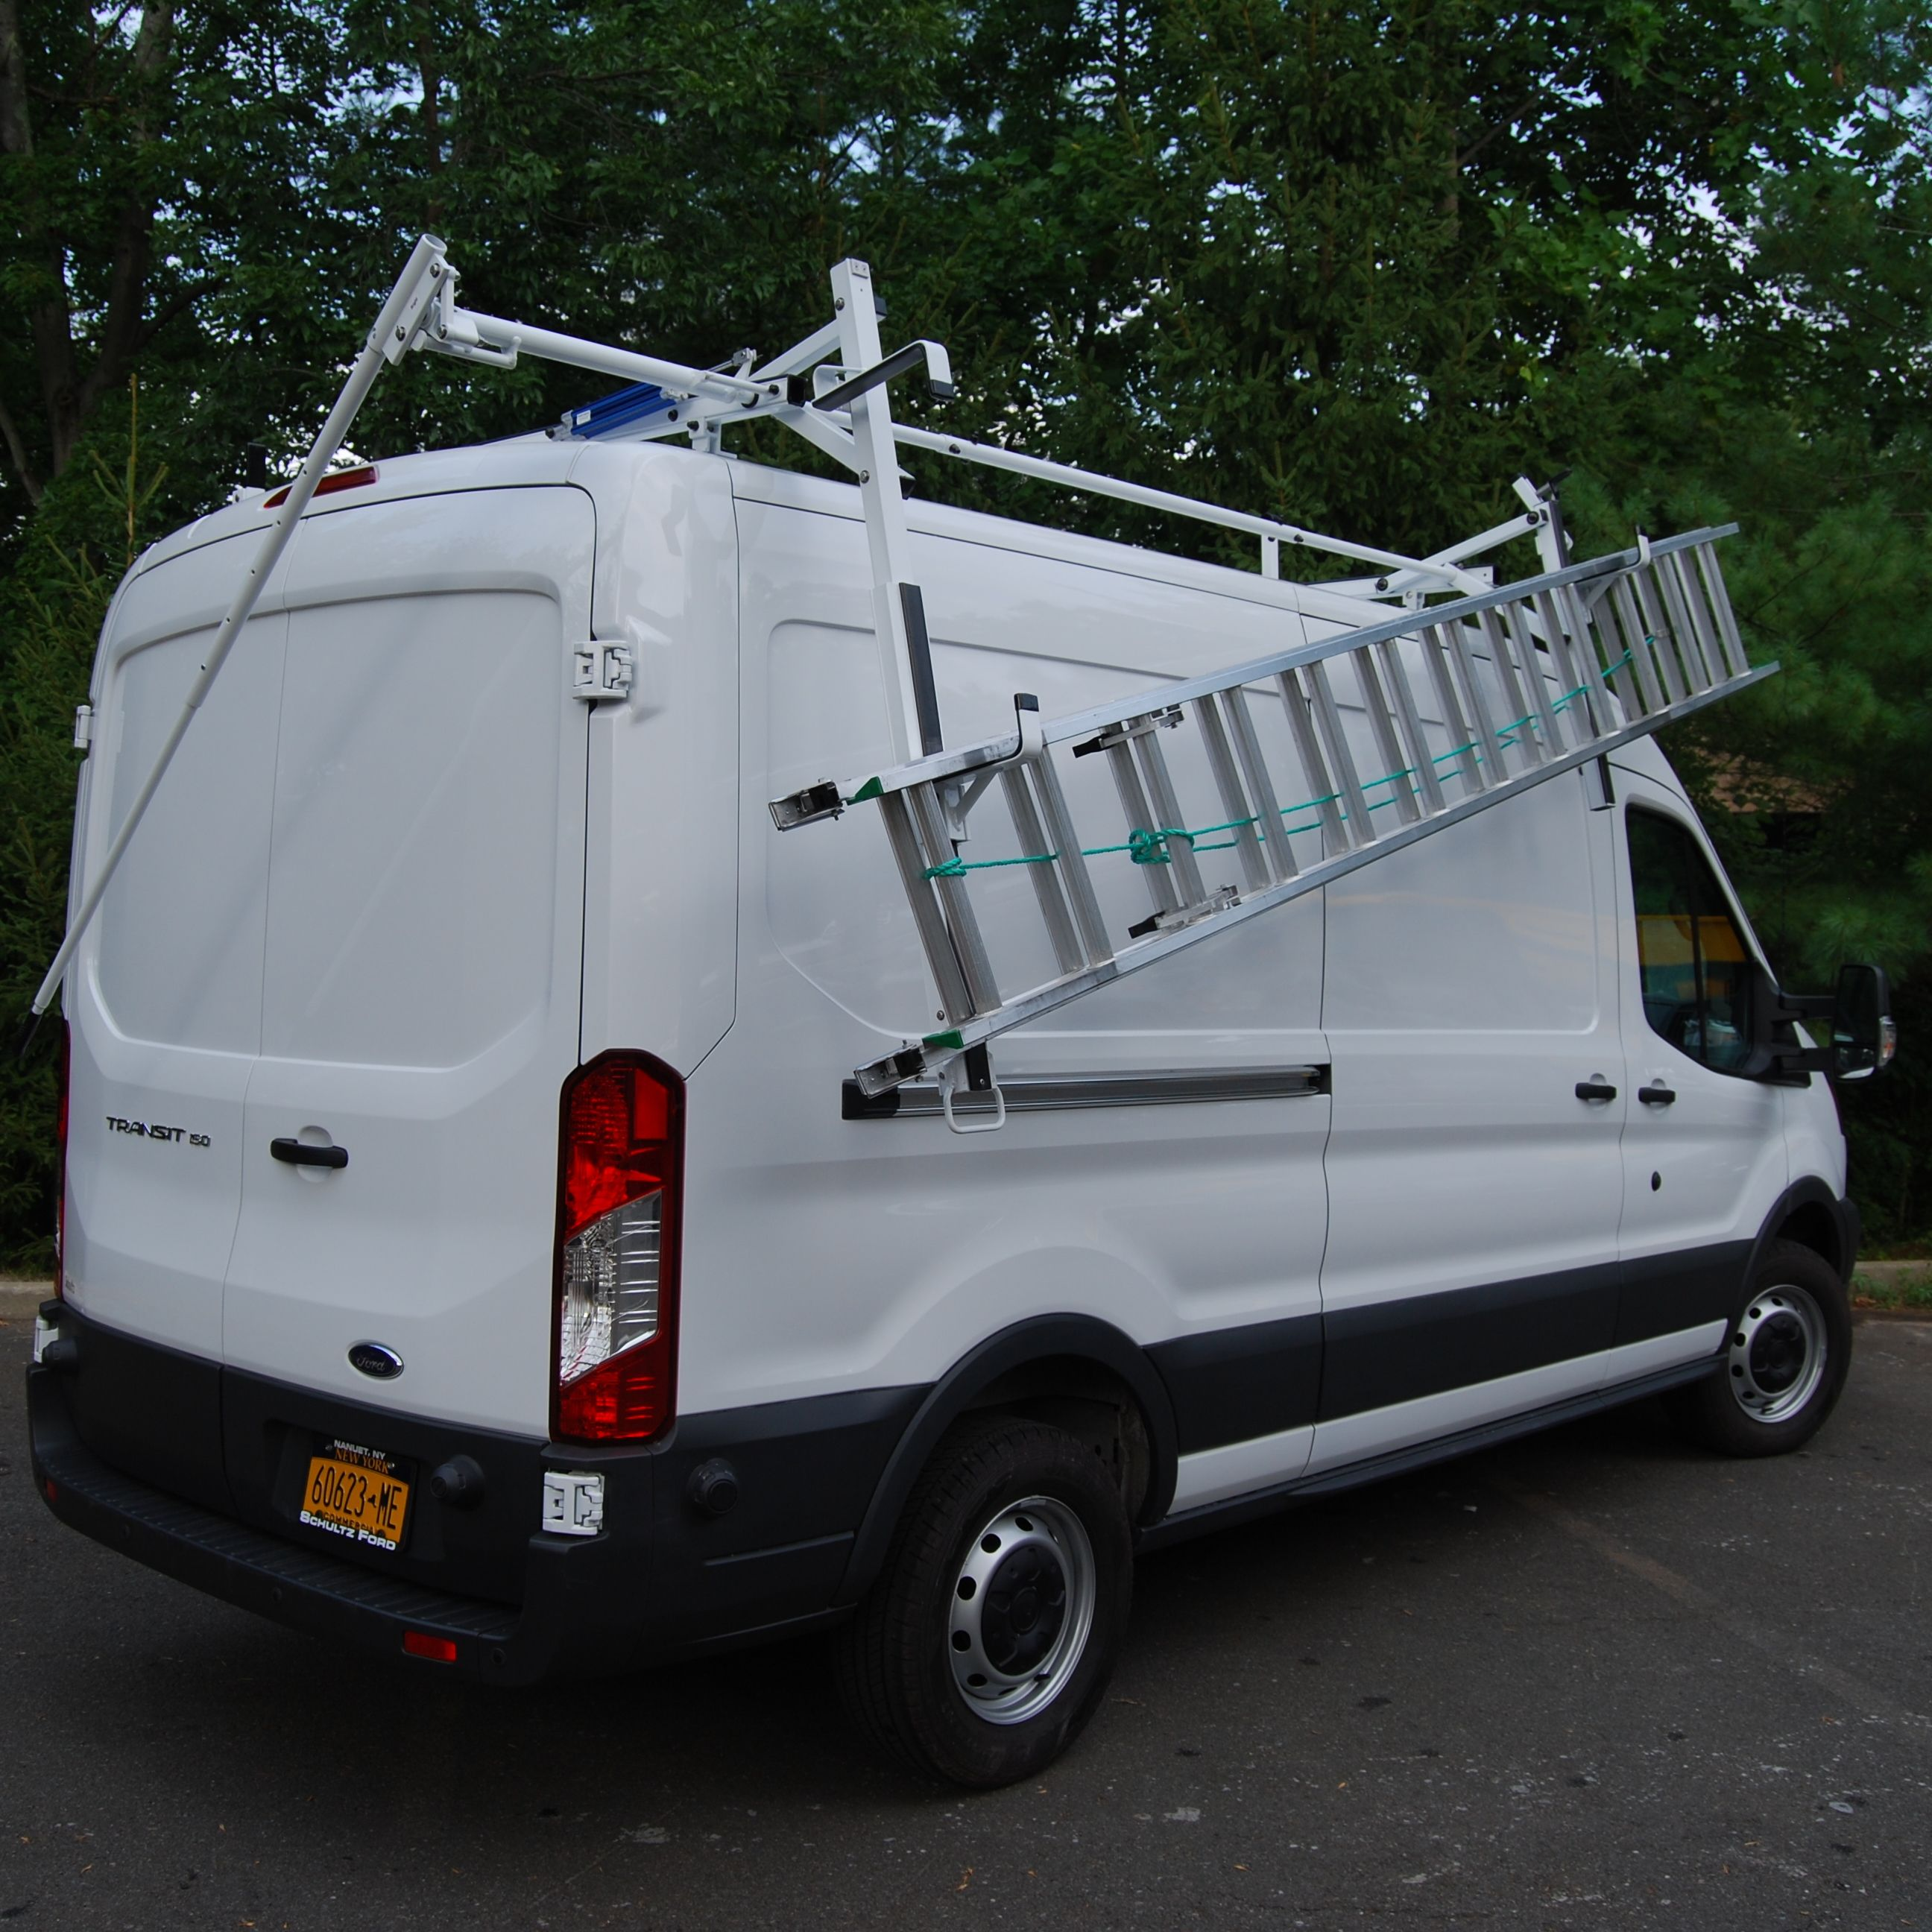 Check Out Our Van Ladder Racks And Roof Racks For Cargo Work Vans